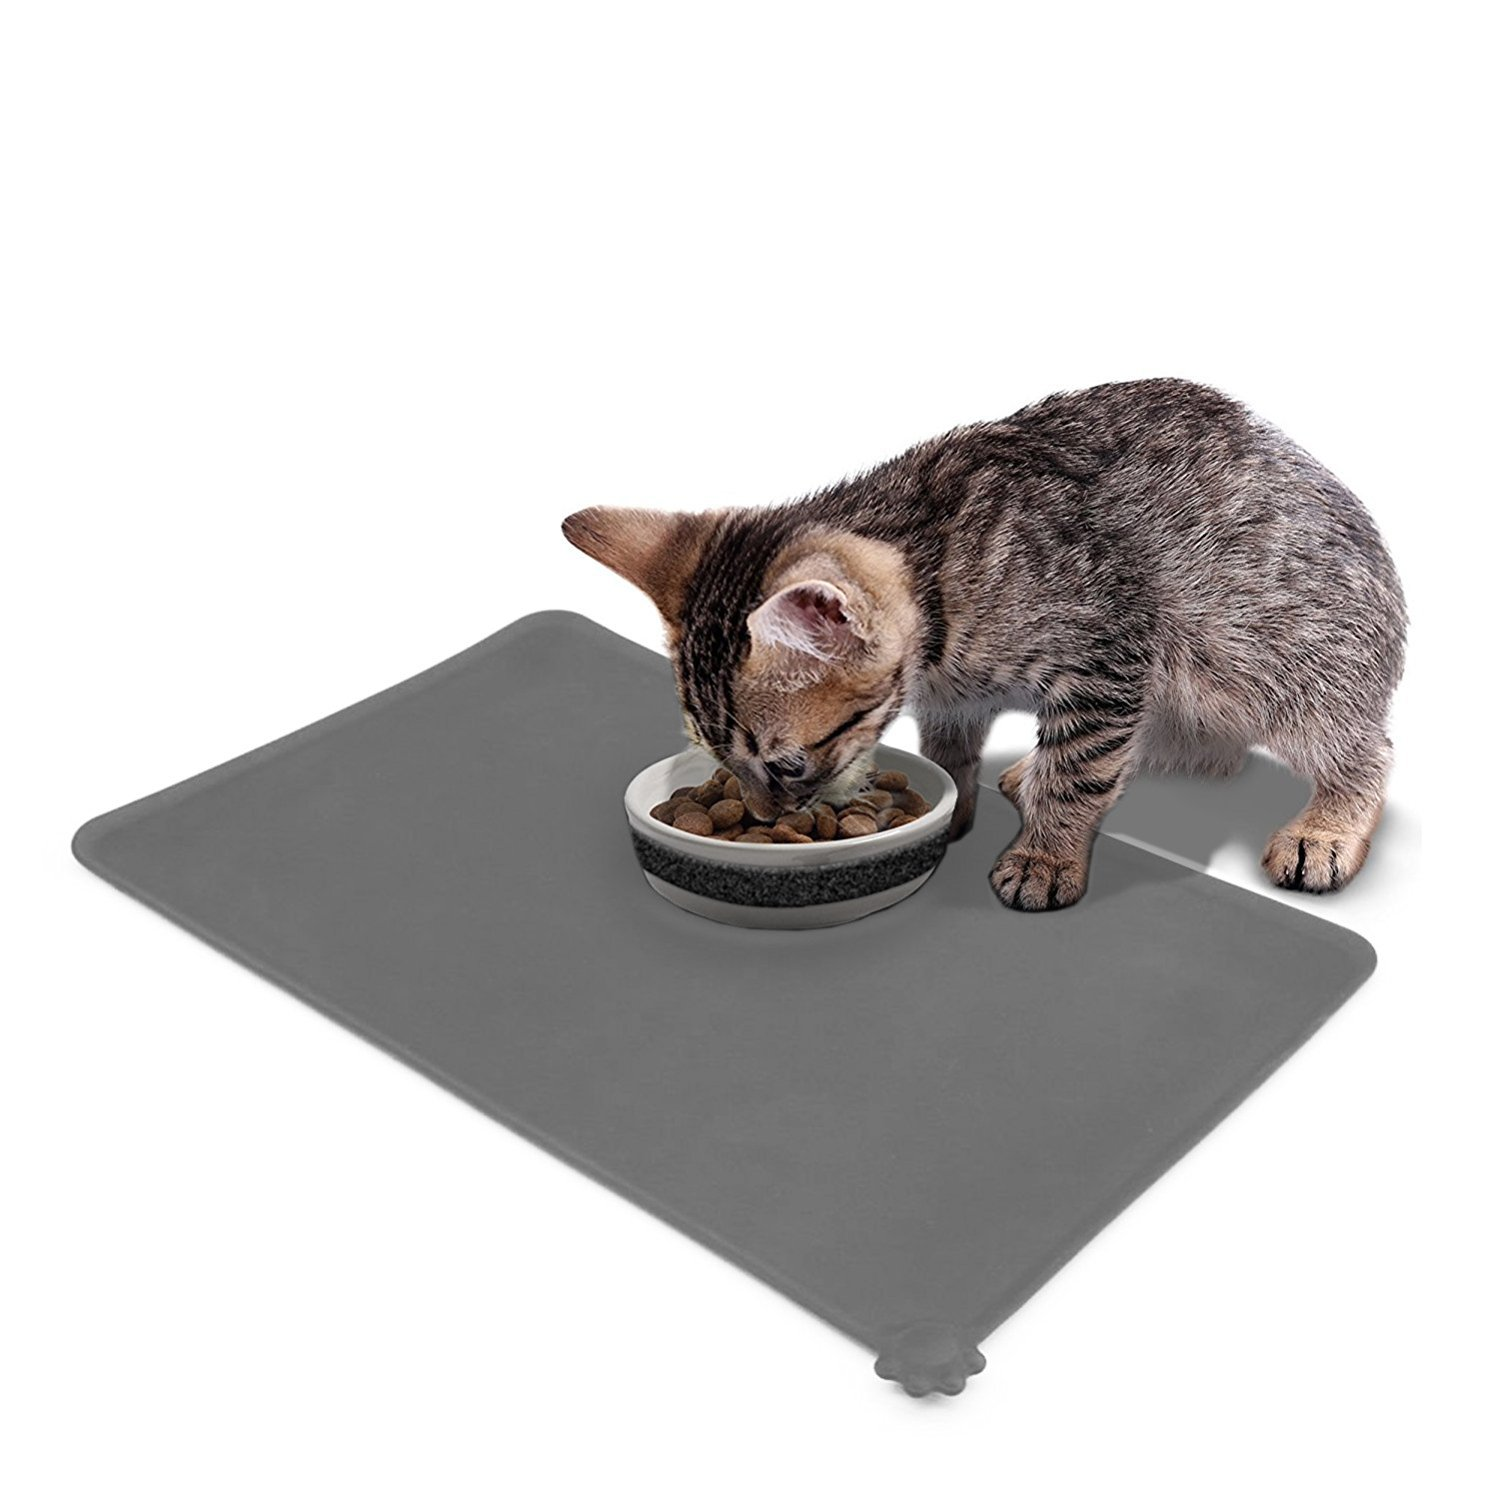 Pet Dog Cat Food Mat Tray-Waterproof Non-slip Pet Dog Cat Feeding Mat Placemat Bowl Mat With Free Towel For Dogs Cats